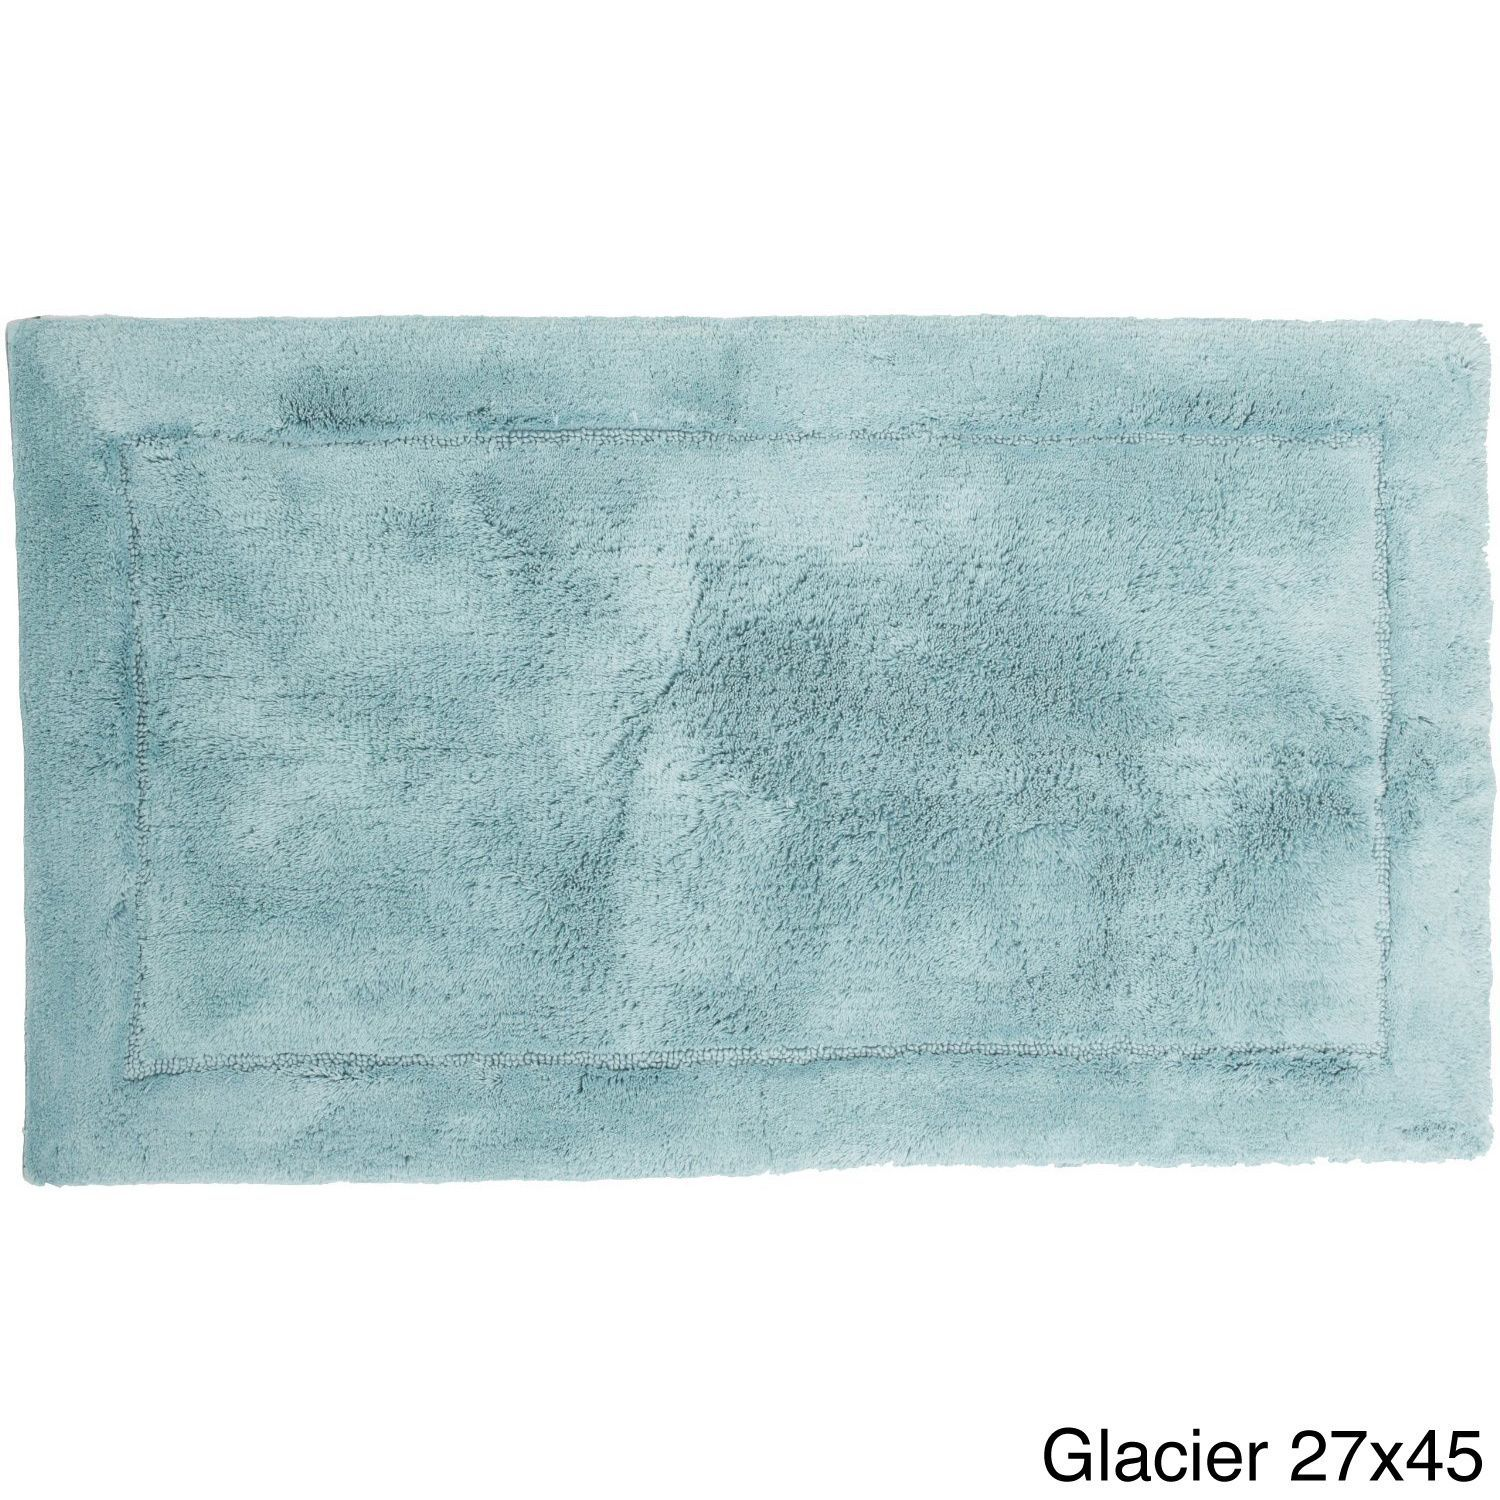 Welspun S Exclusive Bath Rug Is Made Of Unique Hygro